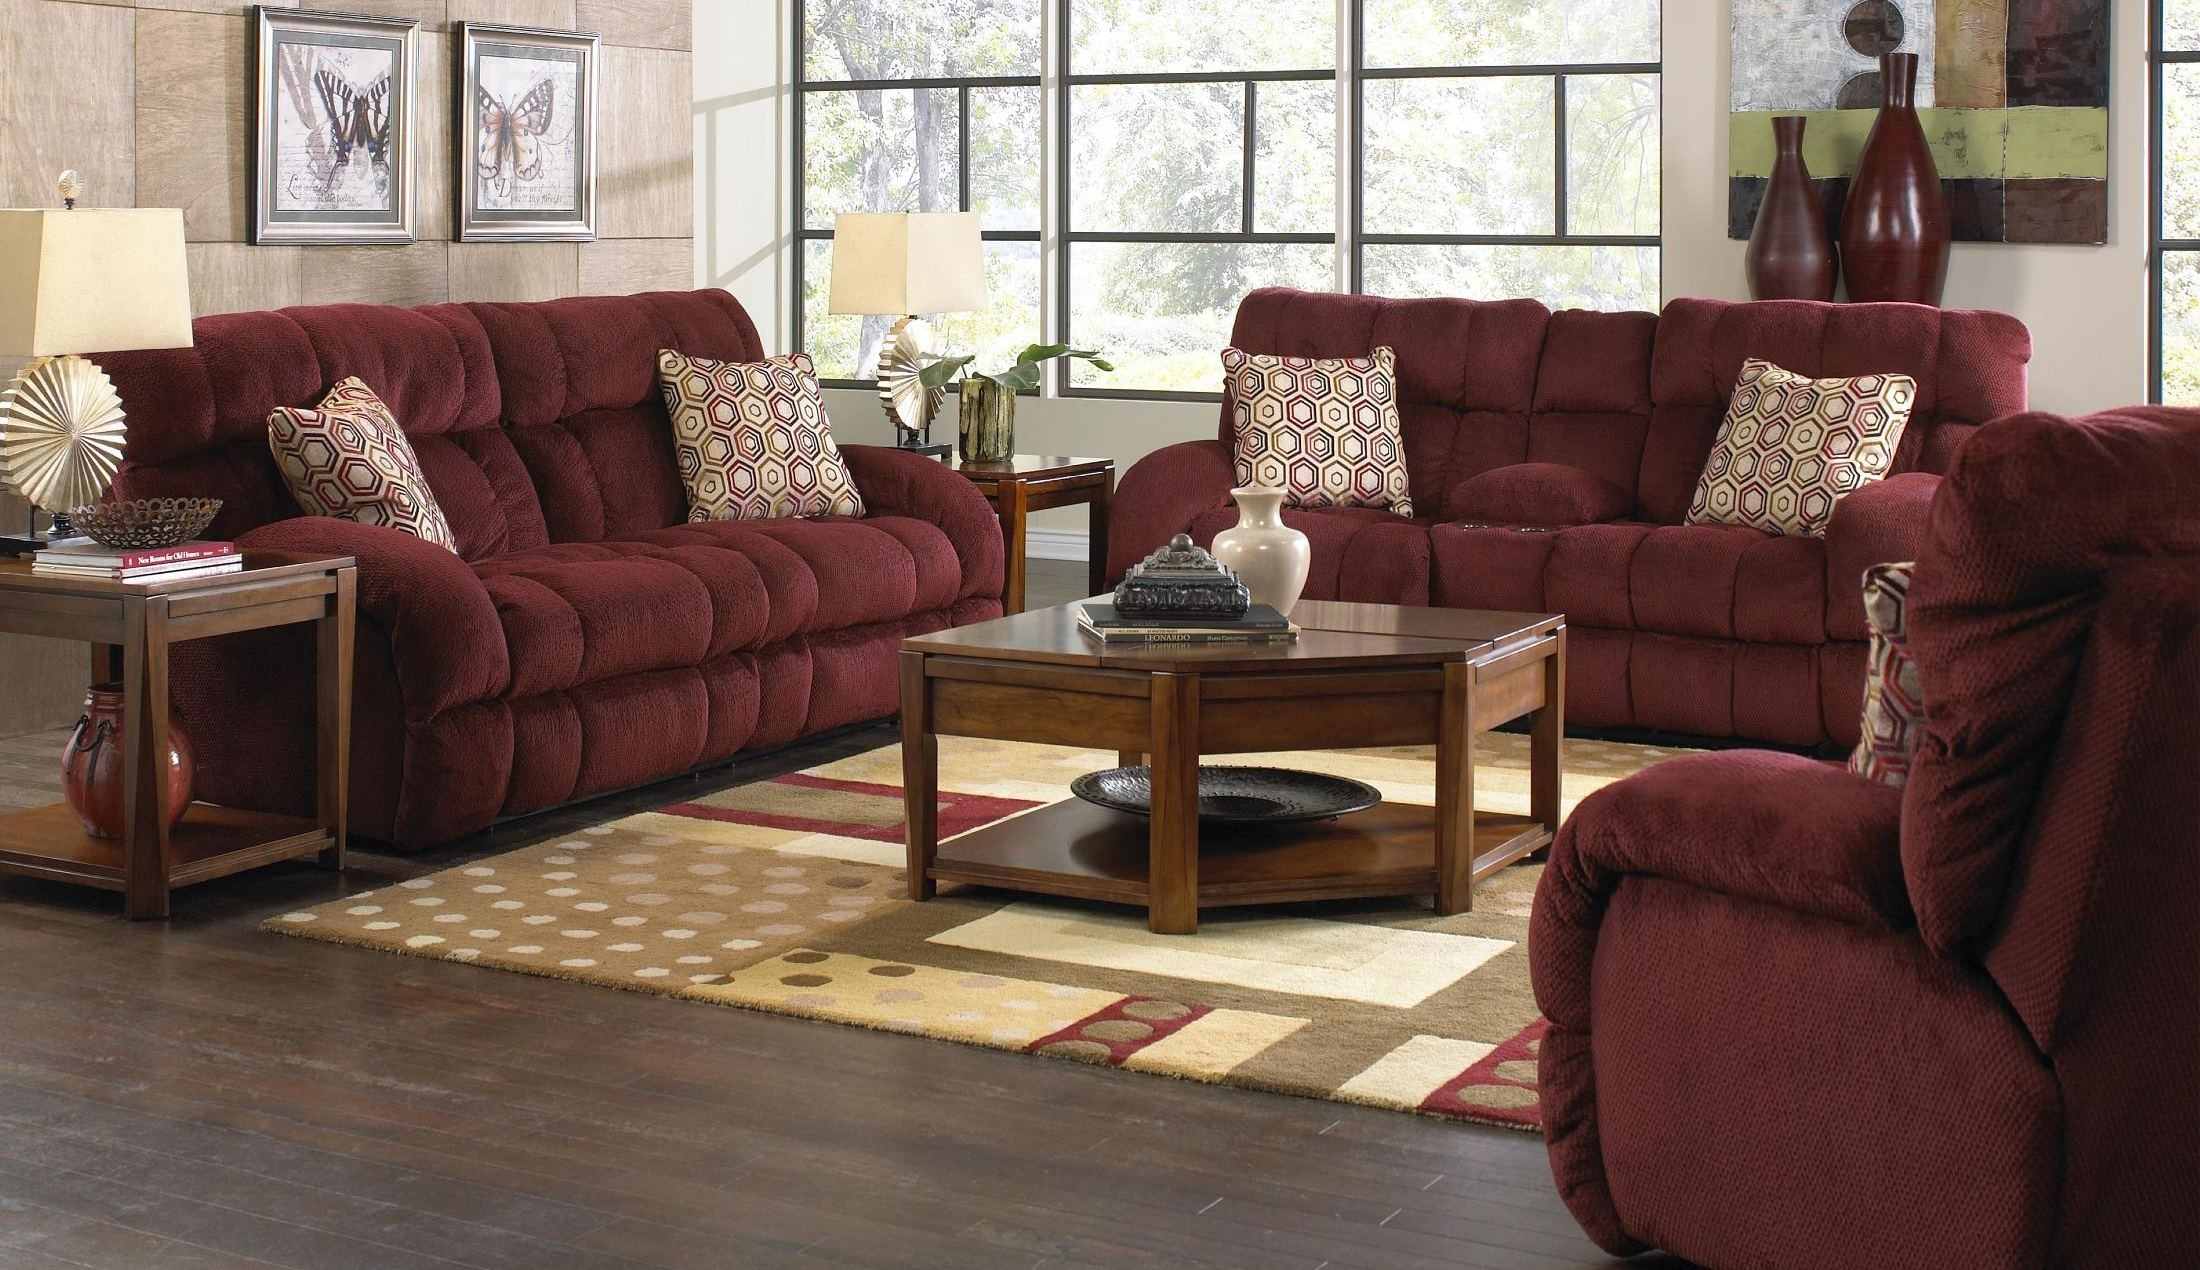 Siesta wine power reclining living room set from catnapper for Living room furniture sets made in usa